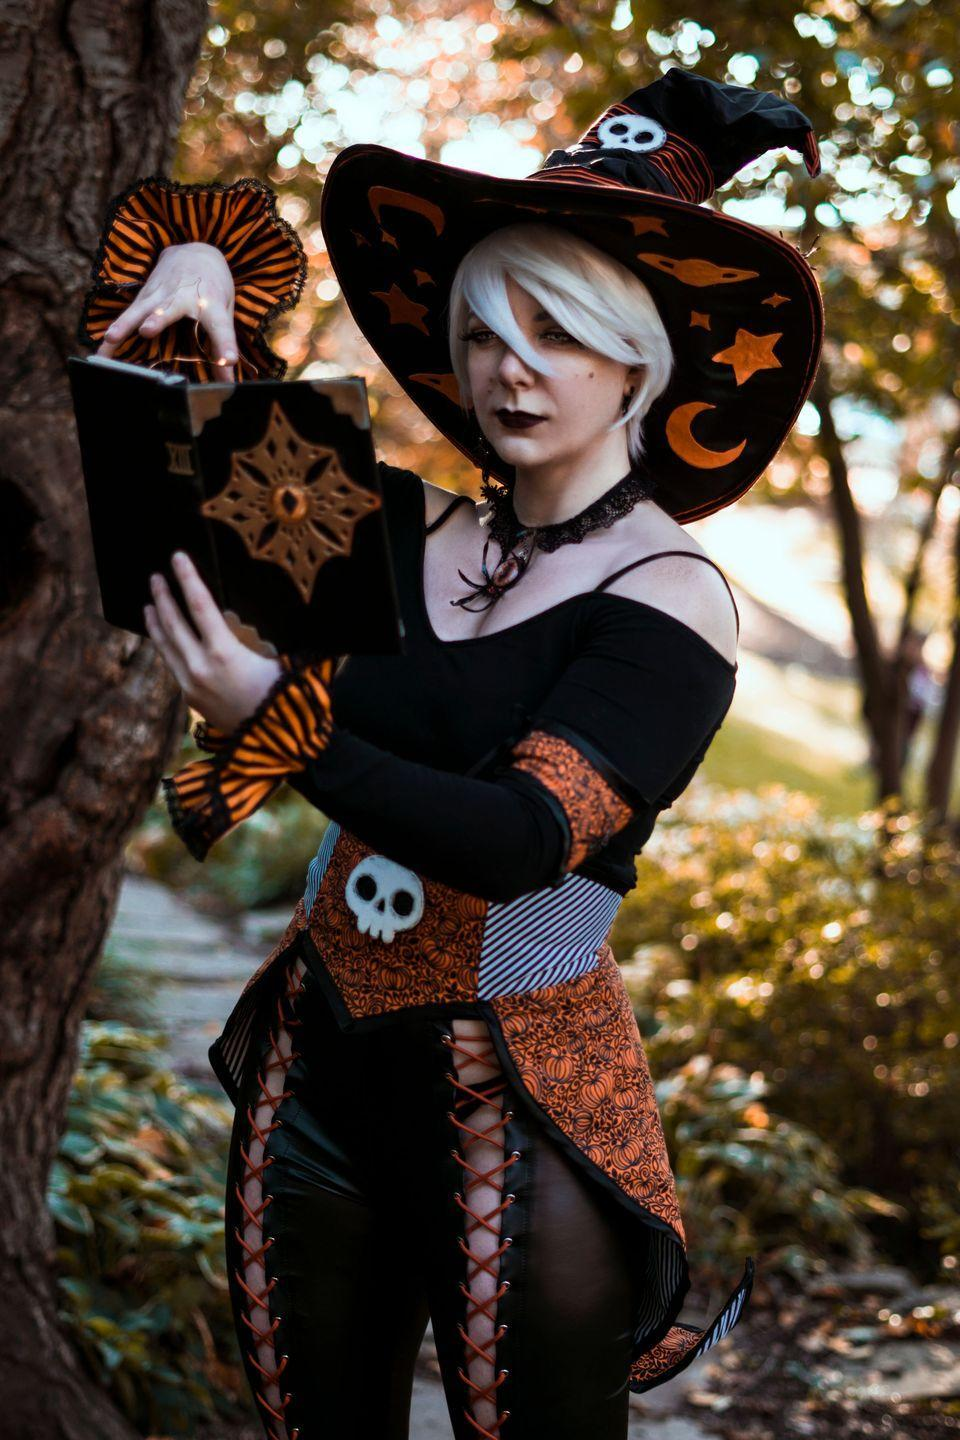 """<p>Looking for a unique spin on the classic witch? Try a fun orange and black take, like this one. If you don't have the sewing know-how to mimic the look, try black lace-up pants, an orange and black blouse, and combat boots. The hat is a bit easier to DIY—use orange tape and an iron-on skeleton patch.</p><p> <a class=""""link rapid-noclick-resp"""" href=""""https://www.amazon.com/Womens-Cutout-Leggings-Bodycon-Bandage/dp/B085TDLGWB?tag=syn-yahoo-20&ascsubtag=%5Bartid%7C10072.g.33534666%5Bsrc%7Cyahoo-us"""" rel=""""nofollow noopener"""" target=""""_blank"""" data-ylk=""""slk:SHOP LACE-UP PANTS"""">SHOP LACE-UP PANTS</a></p><p><a class=""""link rapid-noclick-resp"""" href=""""https://www.amazon.com/Sarin-Mathews-Womens-Casual-T-Shirt/dp/B01HROG9HE/?tag=syn-yahoo-20&ascsubtag=%5Bartid%7C10072.g.33534666%5Bsrc%7Cyahoo-us"""" rel=""""nofollow noopener"""" target=""""_blank"""" data-ylk=""""slk:SHOP ORANGE AND BLACK TOP"""">SHOP ORANGE AND BLACK TOP</a></p><p><a class=""""link rapid-noclick-resp"""" href=""""https://www.amazon.com/Leg-Avenue-Womens-Large-Ruched/dp/B00JSJSTK2?tag=syn-yahoo-20&ascsubtag=%5Bartid%7C10072.g.33534666%5Bsrc%7Cyahoo-us"""" rel=""""nofollow noopener"""" target=""""_blank"""" data-ylk=""""slk:SHOP WITCH HAT"""">SHOP WITCH HAT</a></p><p><a class=""""link rapid-noclick-resp"""" href=""""https://www.amazon.com/Industrial-Waterproof-Resistant-Multiple-Available/dp/B07TD7R7GM?tag=syn-yahoo-20&ascsubtag=%5Bartid%7C10072.g.33534666%5Bsrc%7Cyahoo-us"""" rel=""""nofollow noopener"""" target=""""_blank"""" data-ylk=""""slk:SHOP ORANGE TAPE"""">SHOP ORANGE TAPE</a></p><p><a class=""""link rapid-noclick-resp"""" href=""""https://www.amazon.com/U-Sky-Sew-Iron-Patches-Clothing/dp/B071X72P7T?tag=syn-yahoo-20&ascsubtag=%5Bartid%7C10072.g.33534666%5Bsrc%7Cyahoo-us"""" rel=""""nofollow noopener"""" target=""""_blank"""" data-ylk=""""slk:SHOP SKELETON PATCH"""">SHOP SKELETON PATCH</a></p>"""